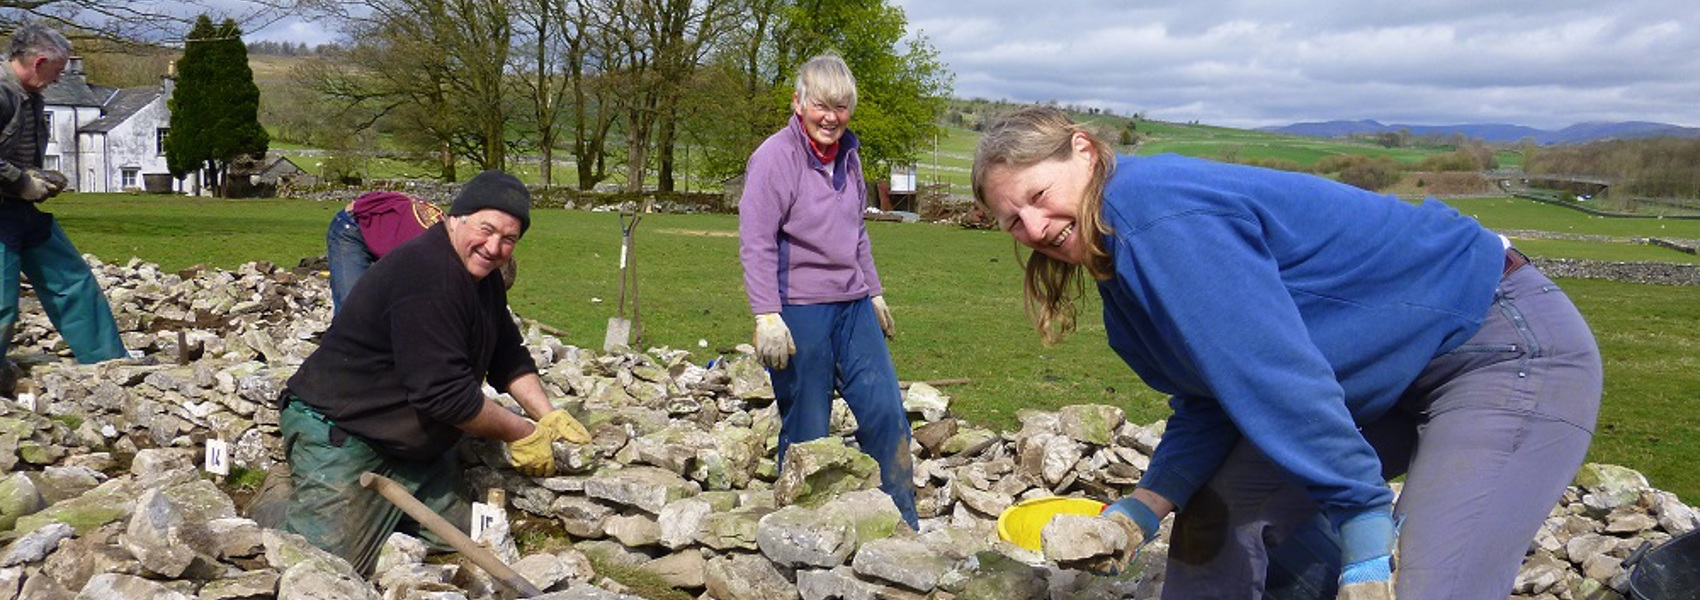 Rural skills to be showcased at Staveley Walling Competition